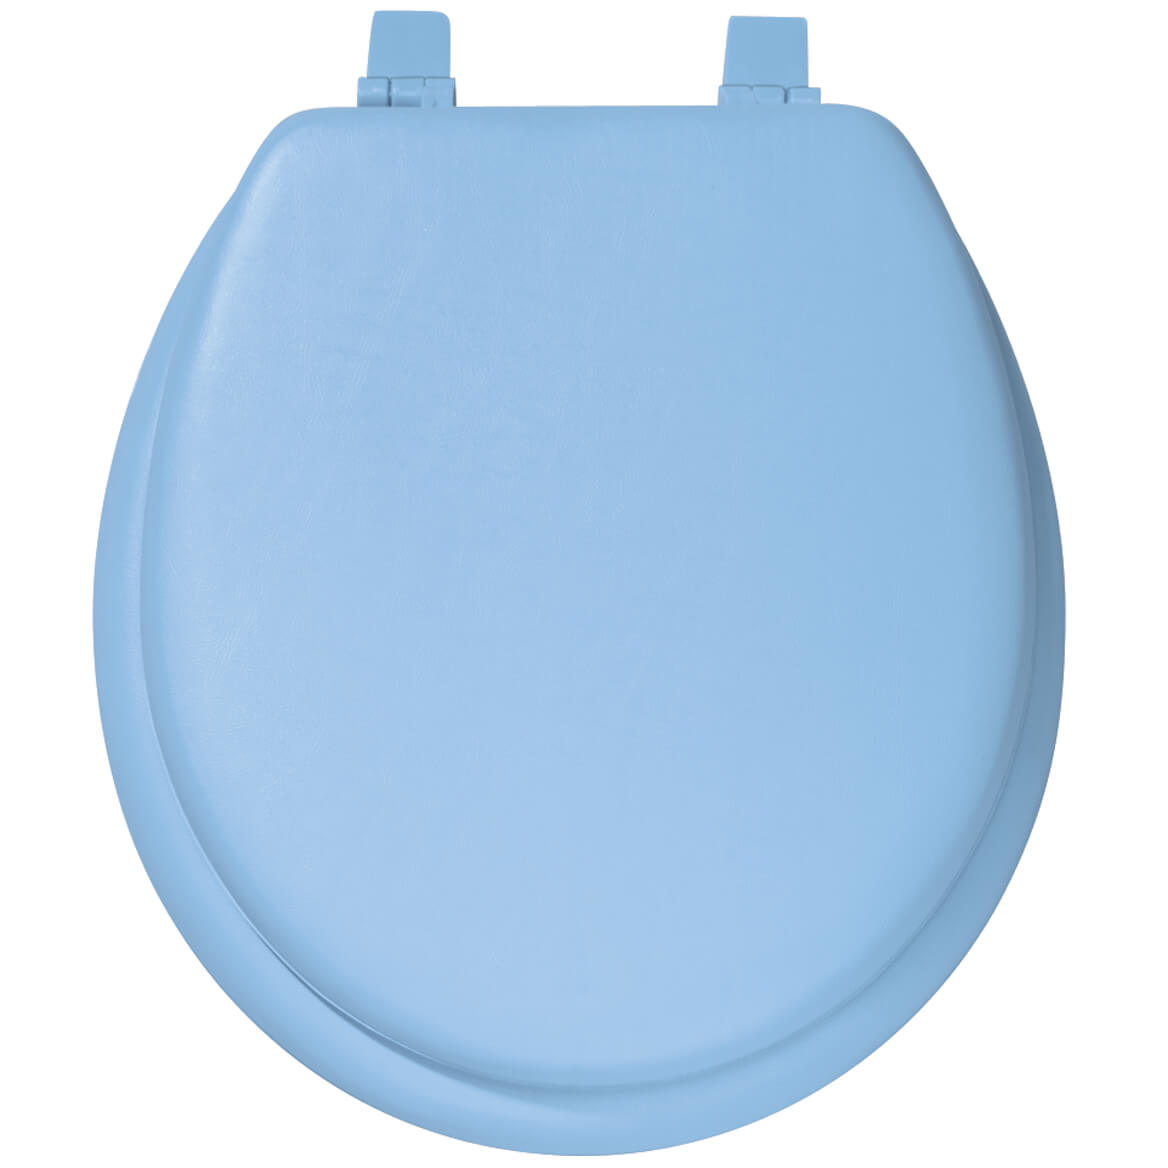 Padded Toilet Seat and Lid-337440